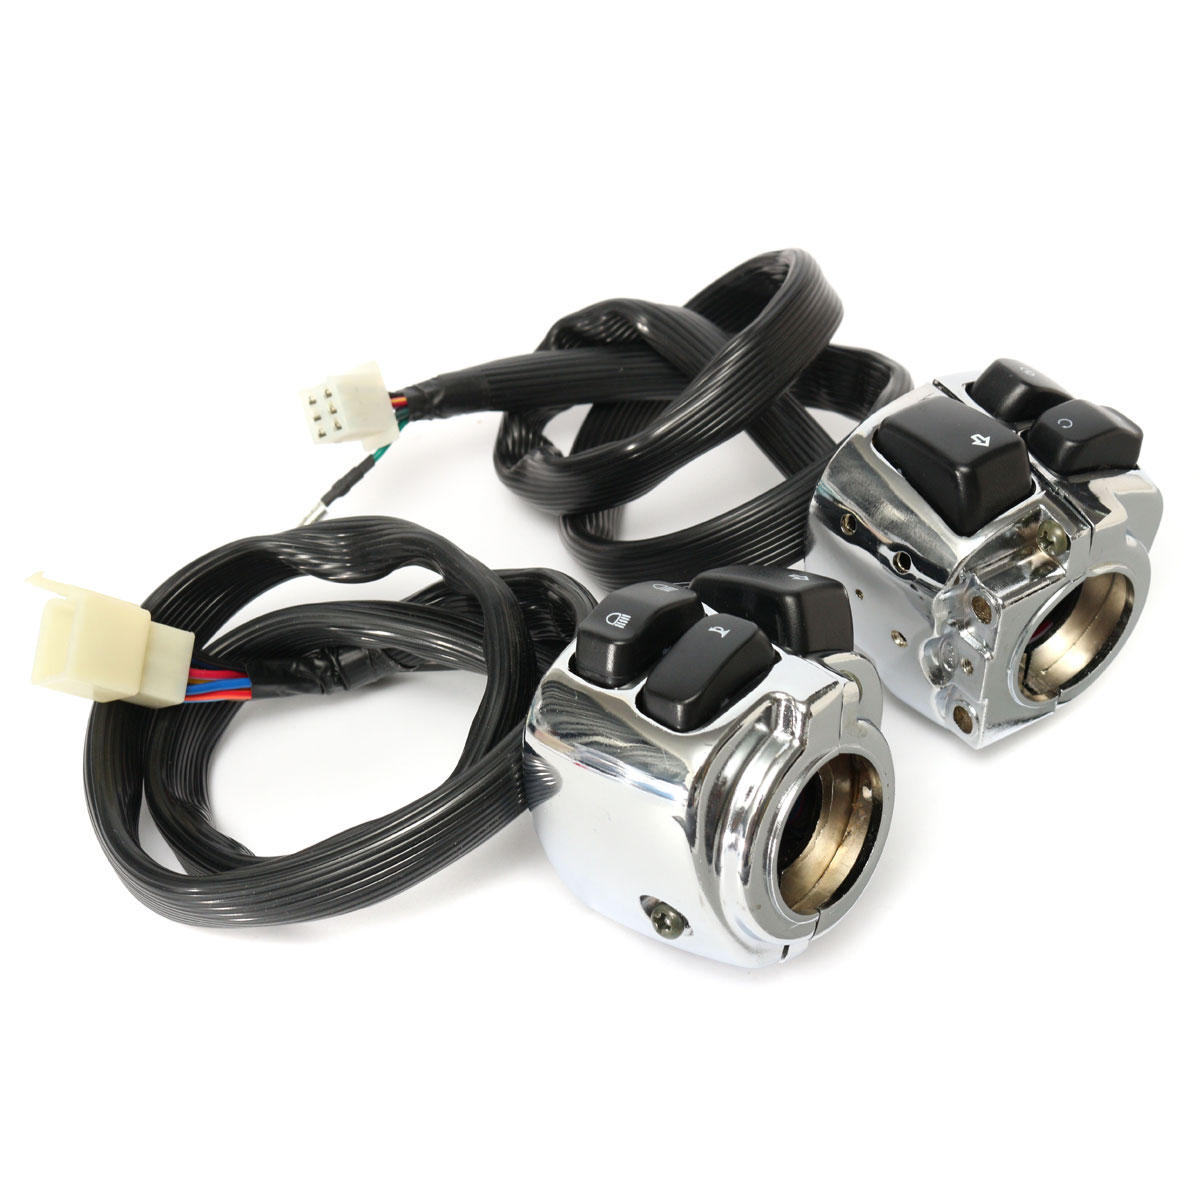 1 Inch Handlebar Control Switches With Wiring Harness For Harley Motorcycle Tubing